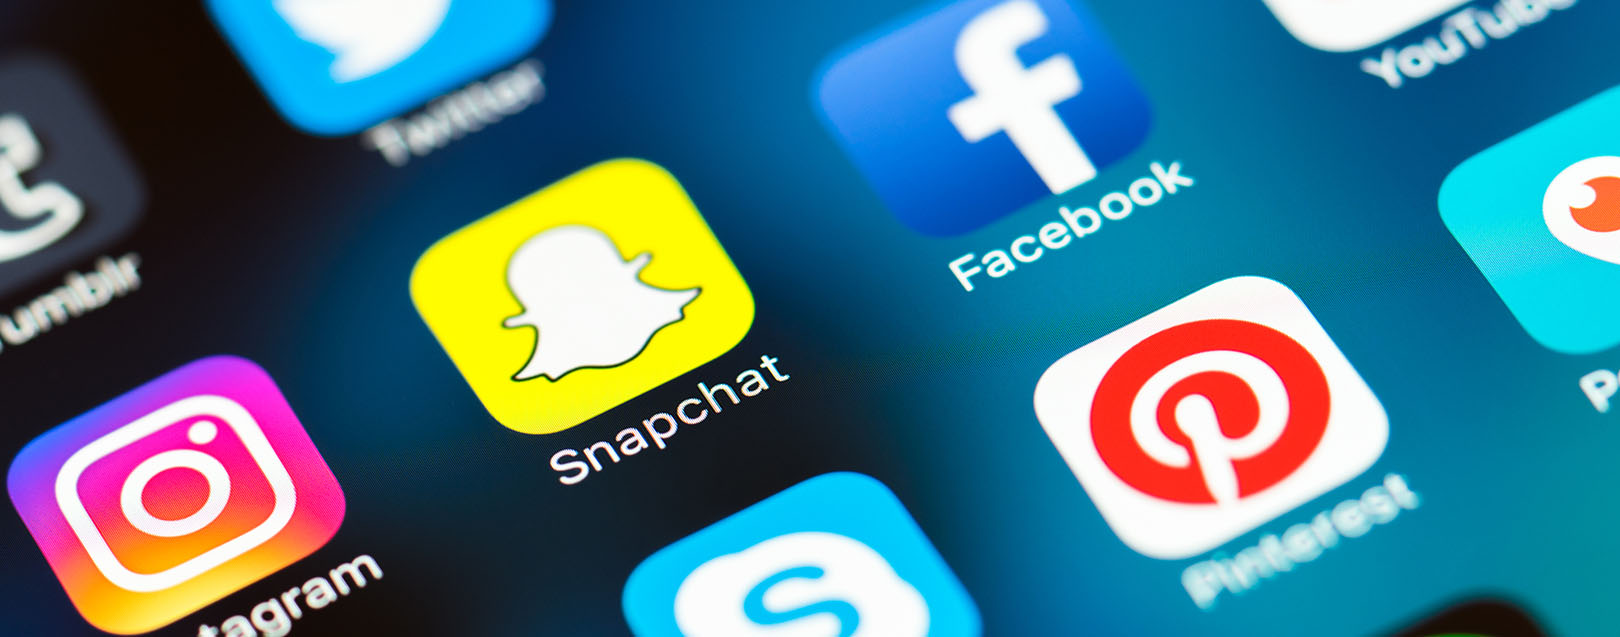 Snapchat decides to set its operations base in UK despite Brexit